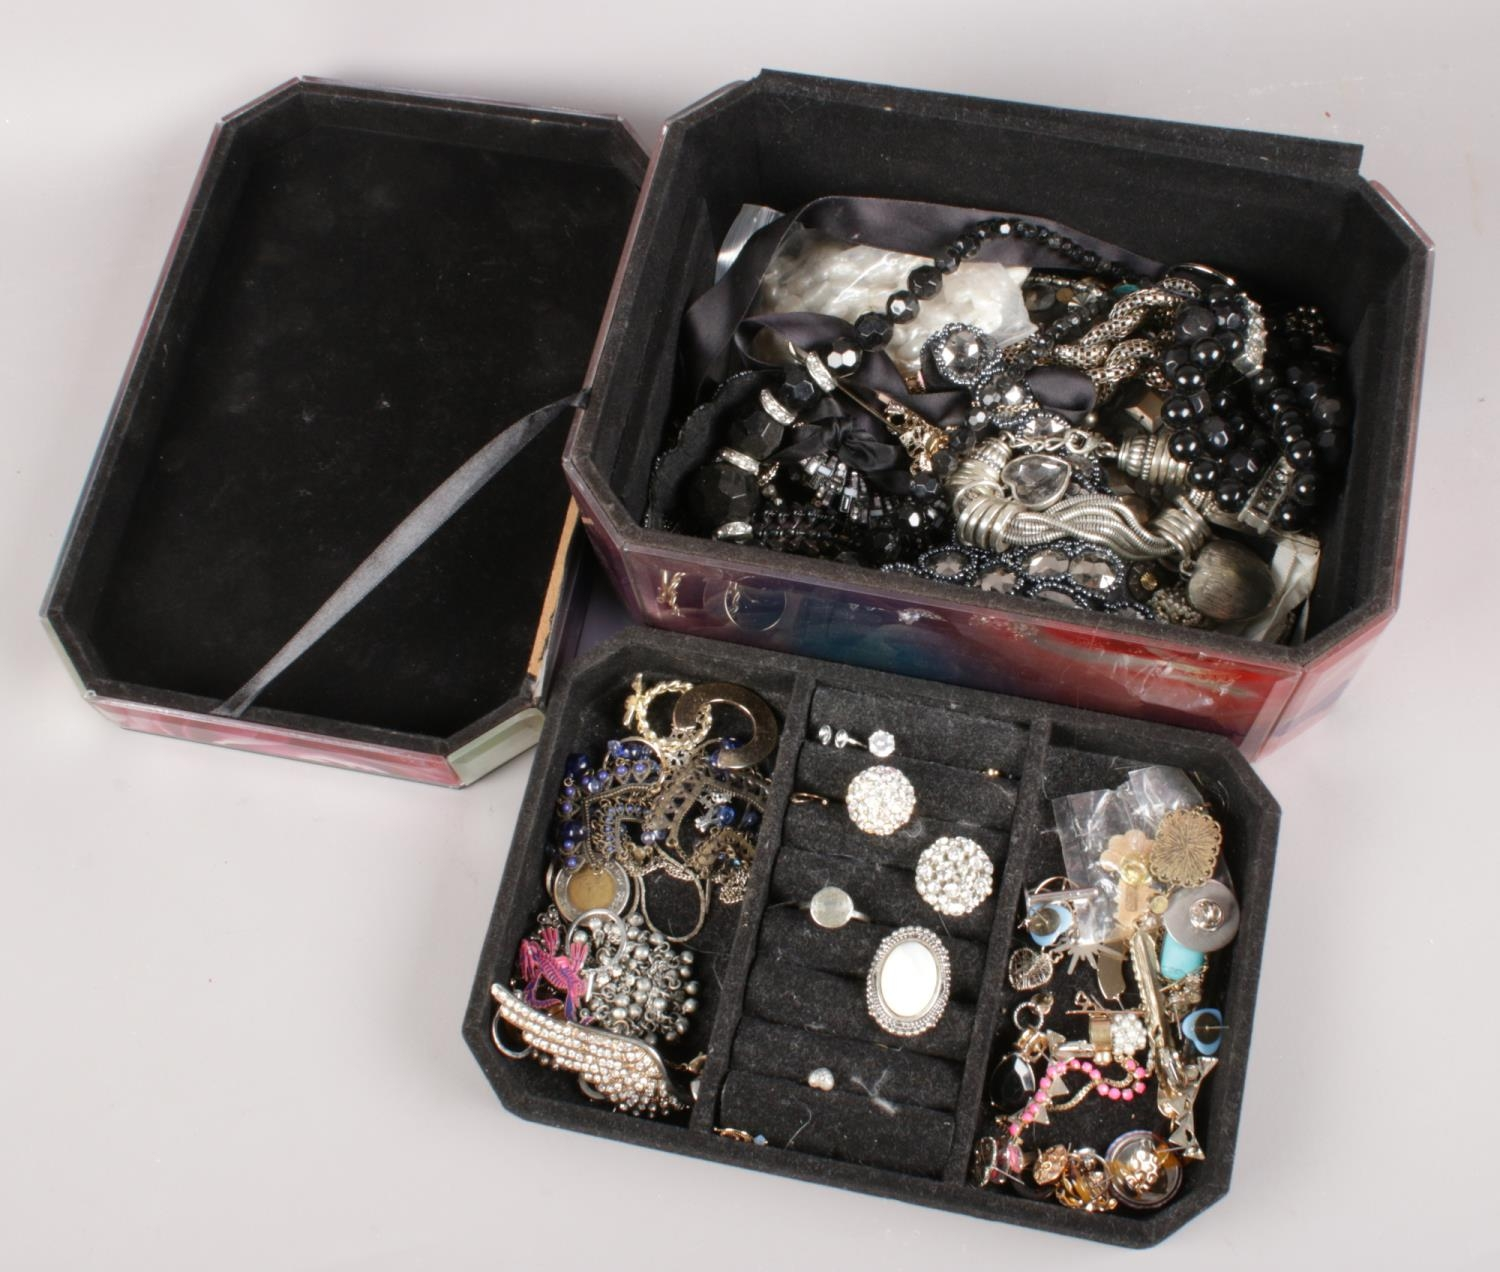 A quantity of costume jewellery. Including rings, necklaces, beads, earrings, etc.